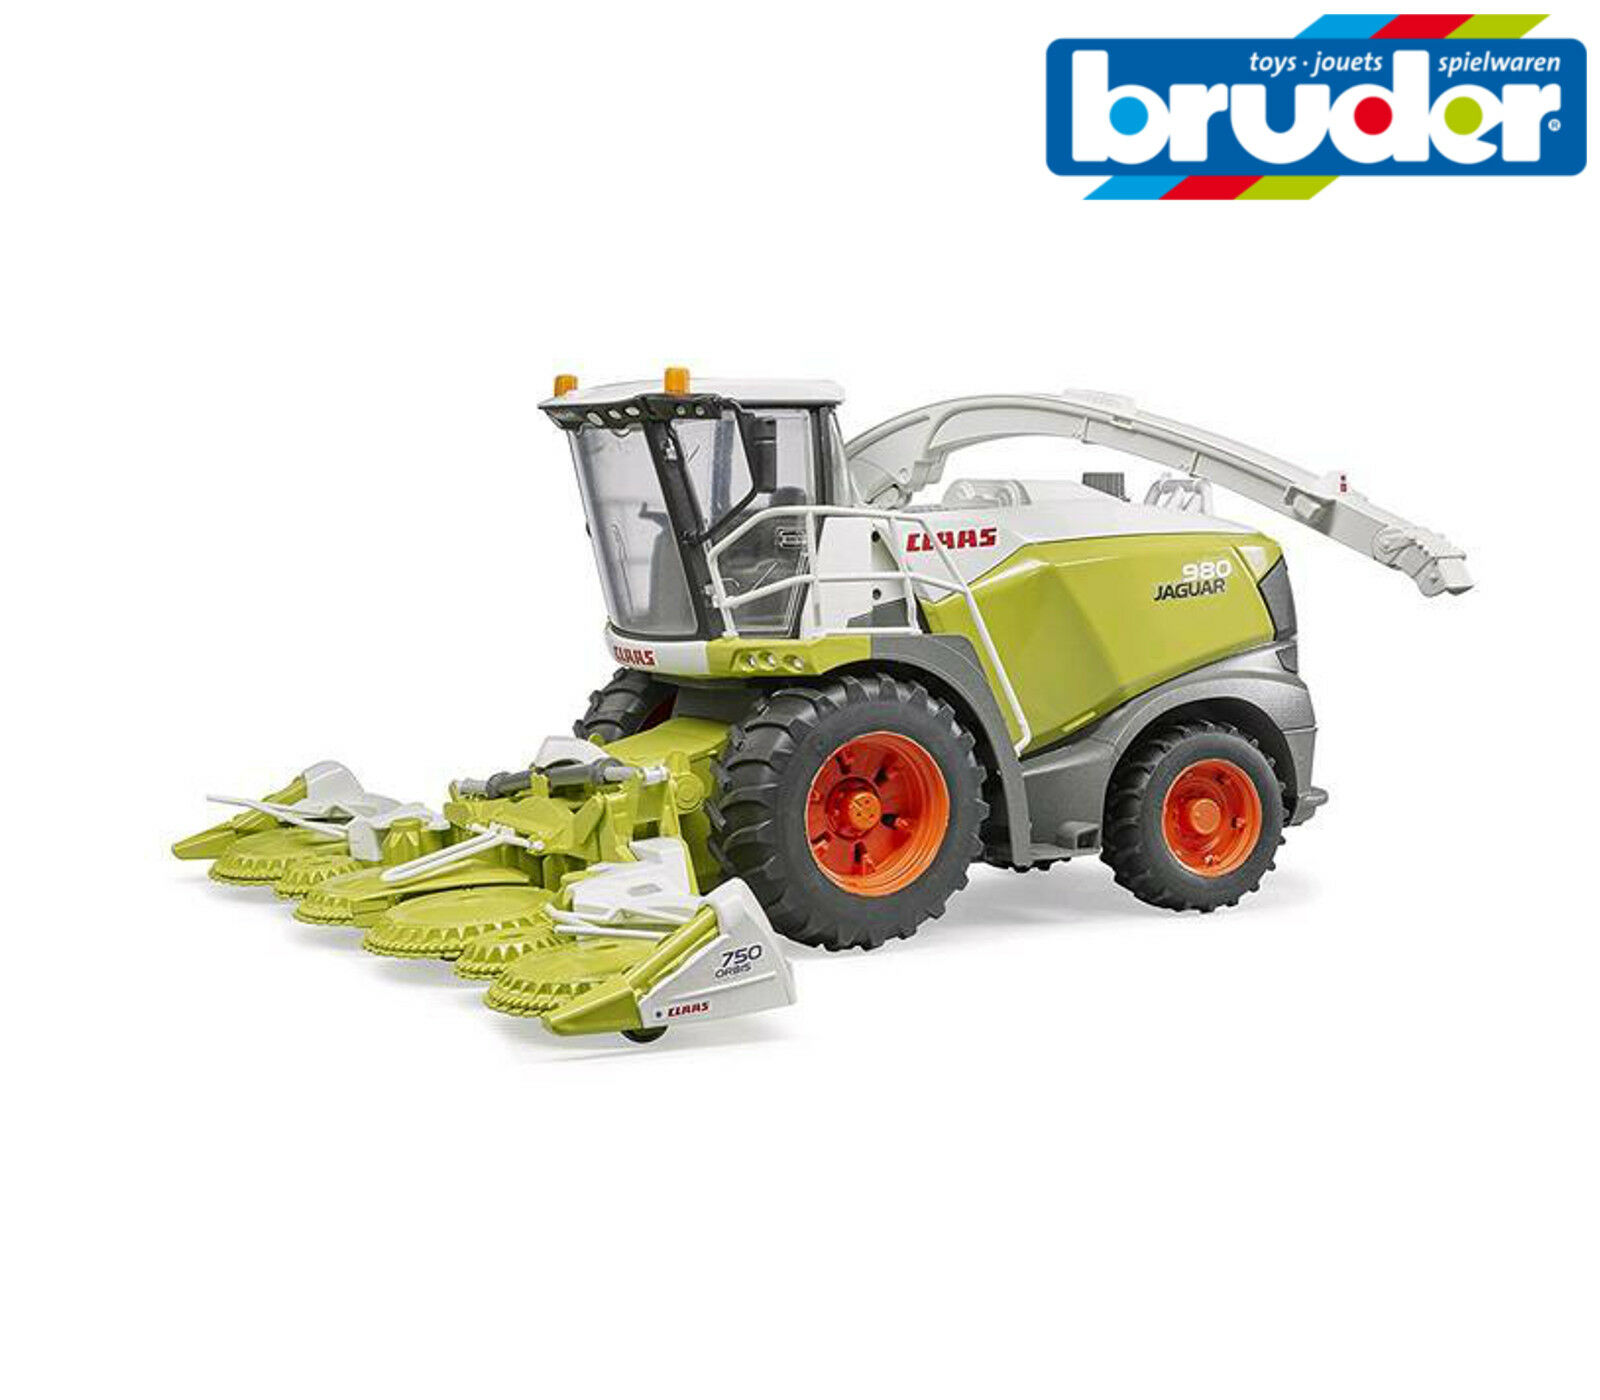 Bruder Toys Toys Toys 02134 Claas Jaguar 980 Forage Harvester Working Steering 1 16Scale ad3ffe